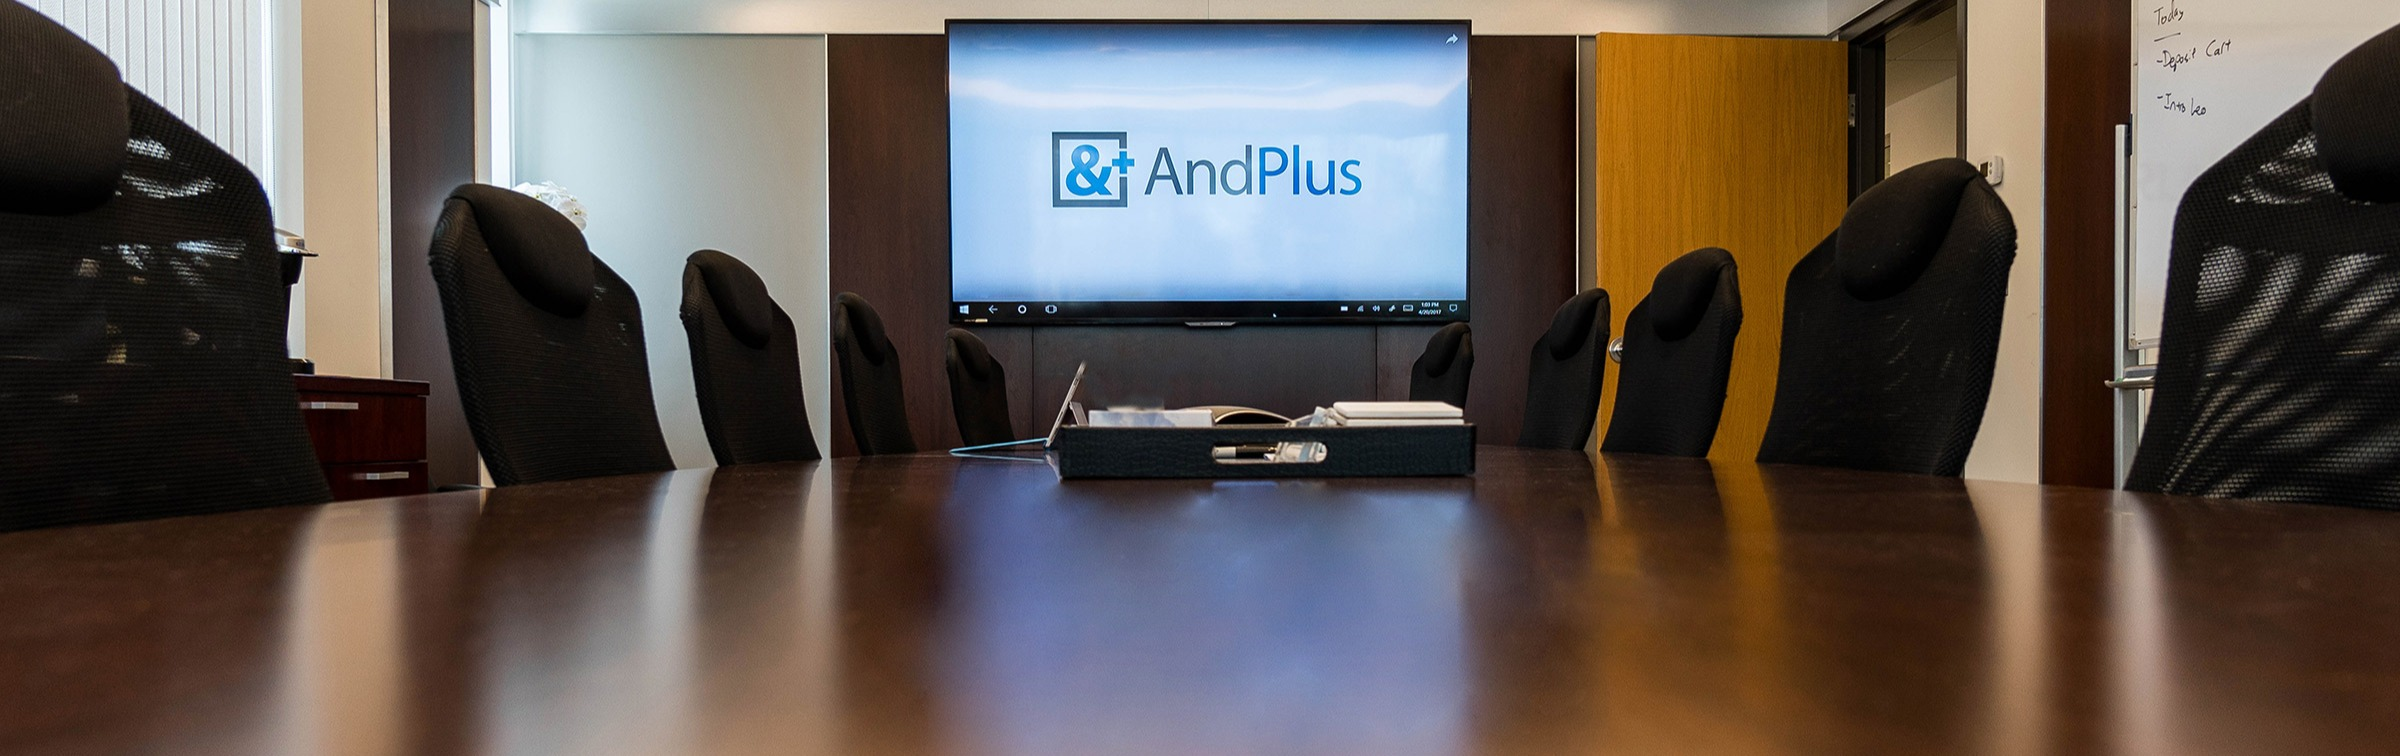 andplus-conference-small